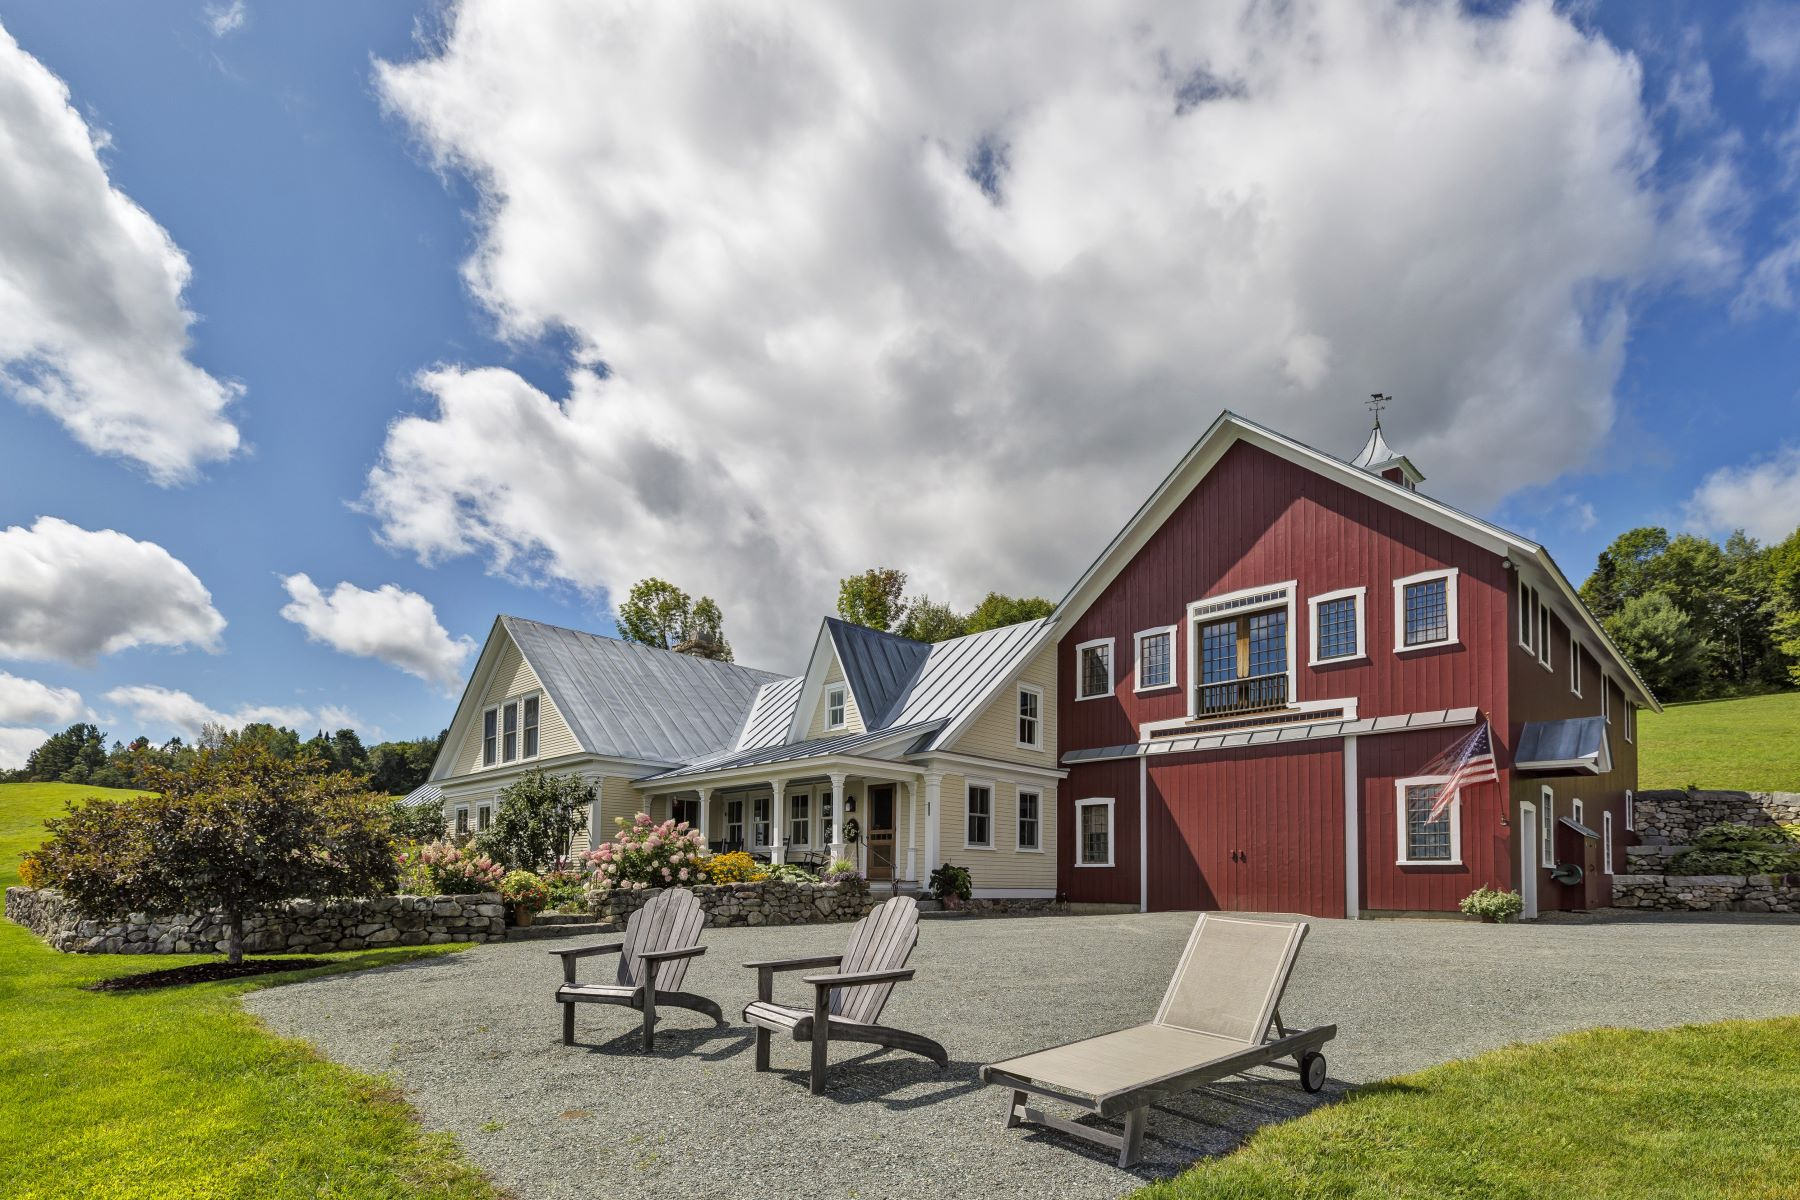 Single Family Homes for Sale at Point of View Farm 868 Groton Road Barnet, Vermont 05862 United States